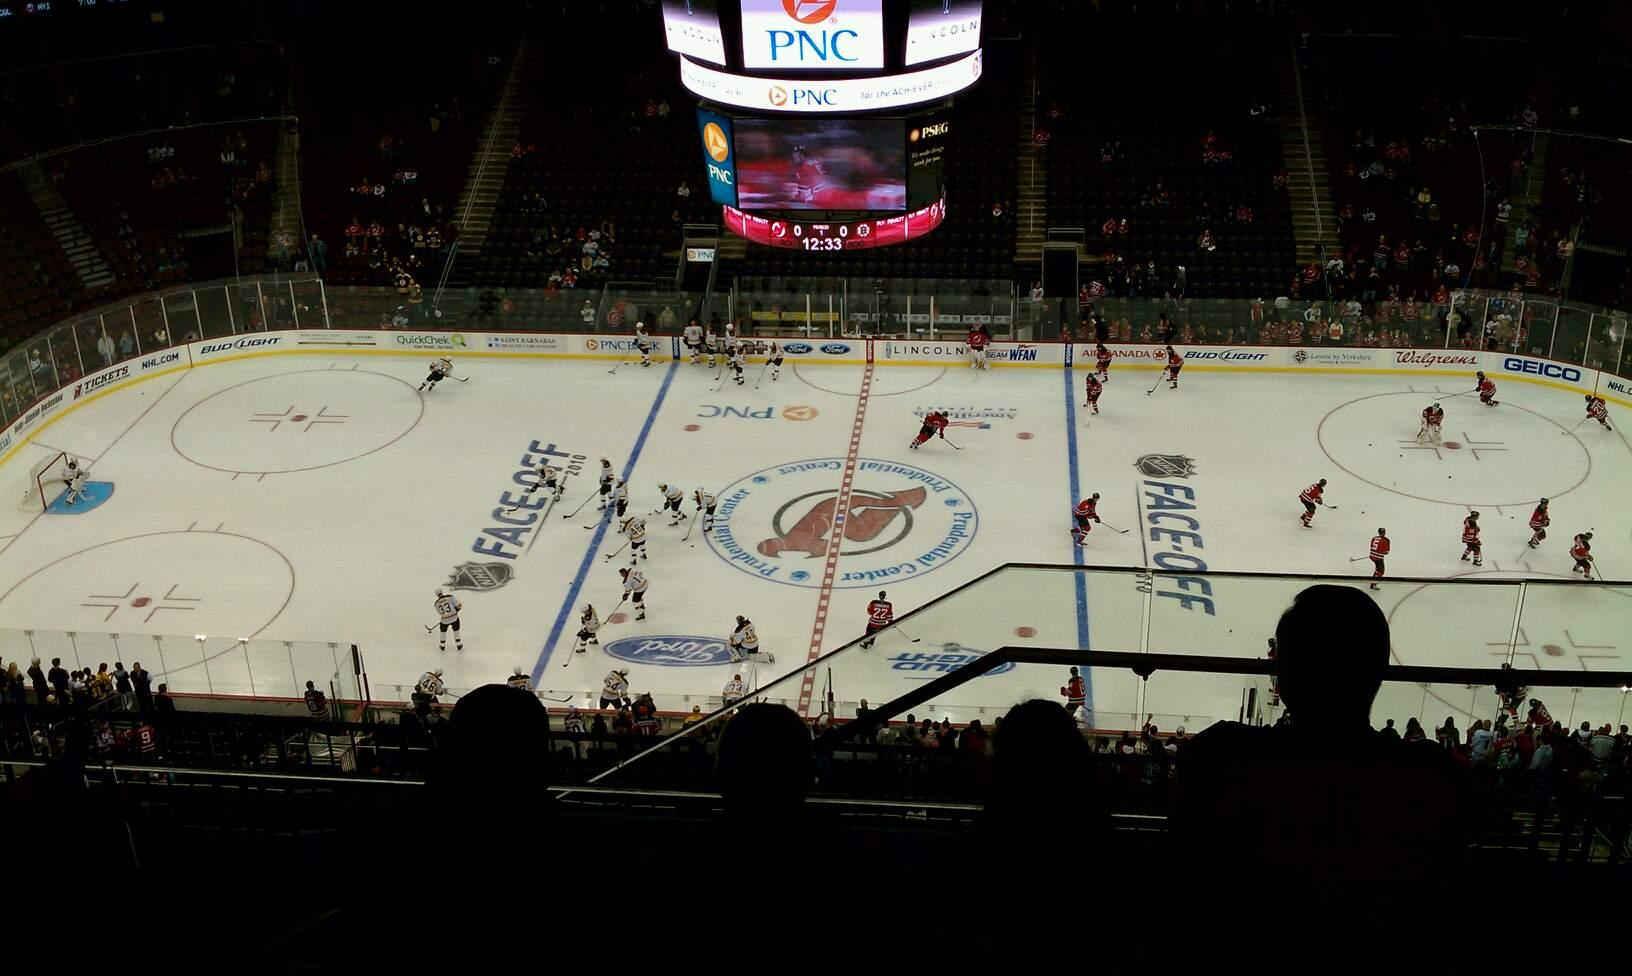 Prudential Center Section 212 Row 5 Seat 1